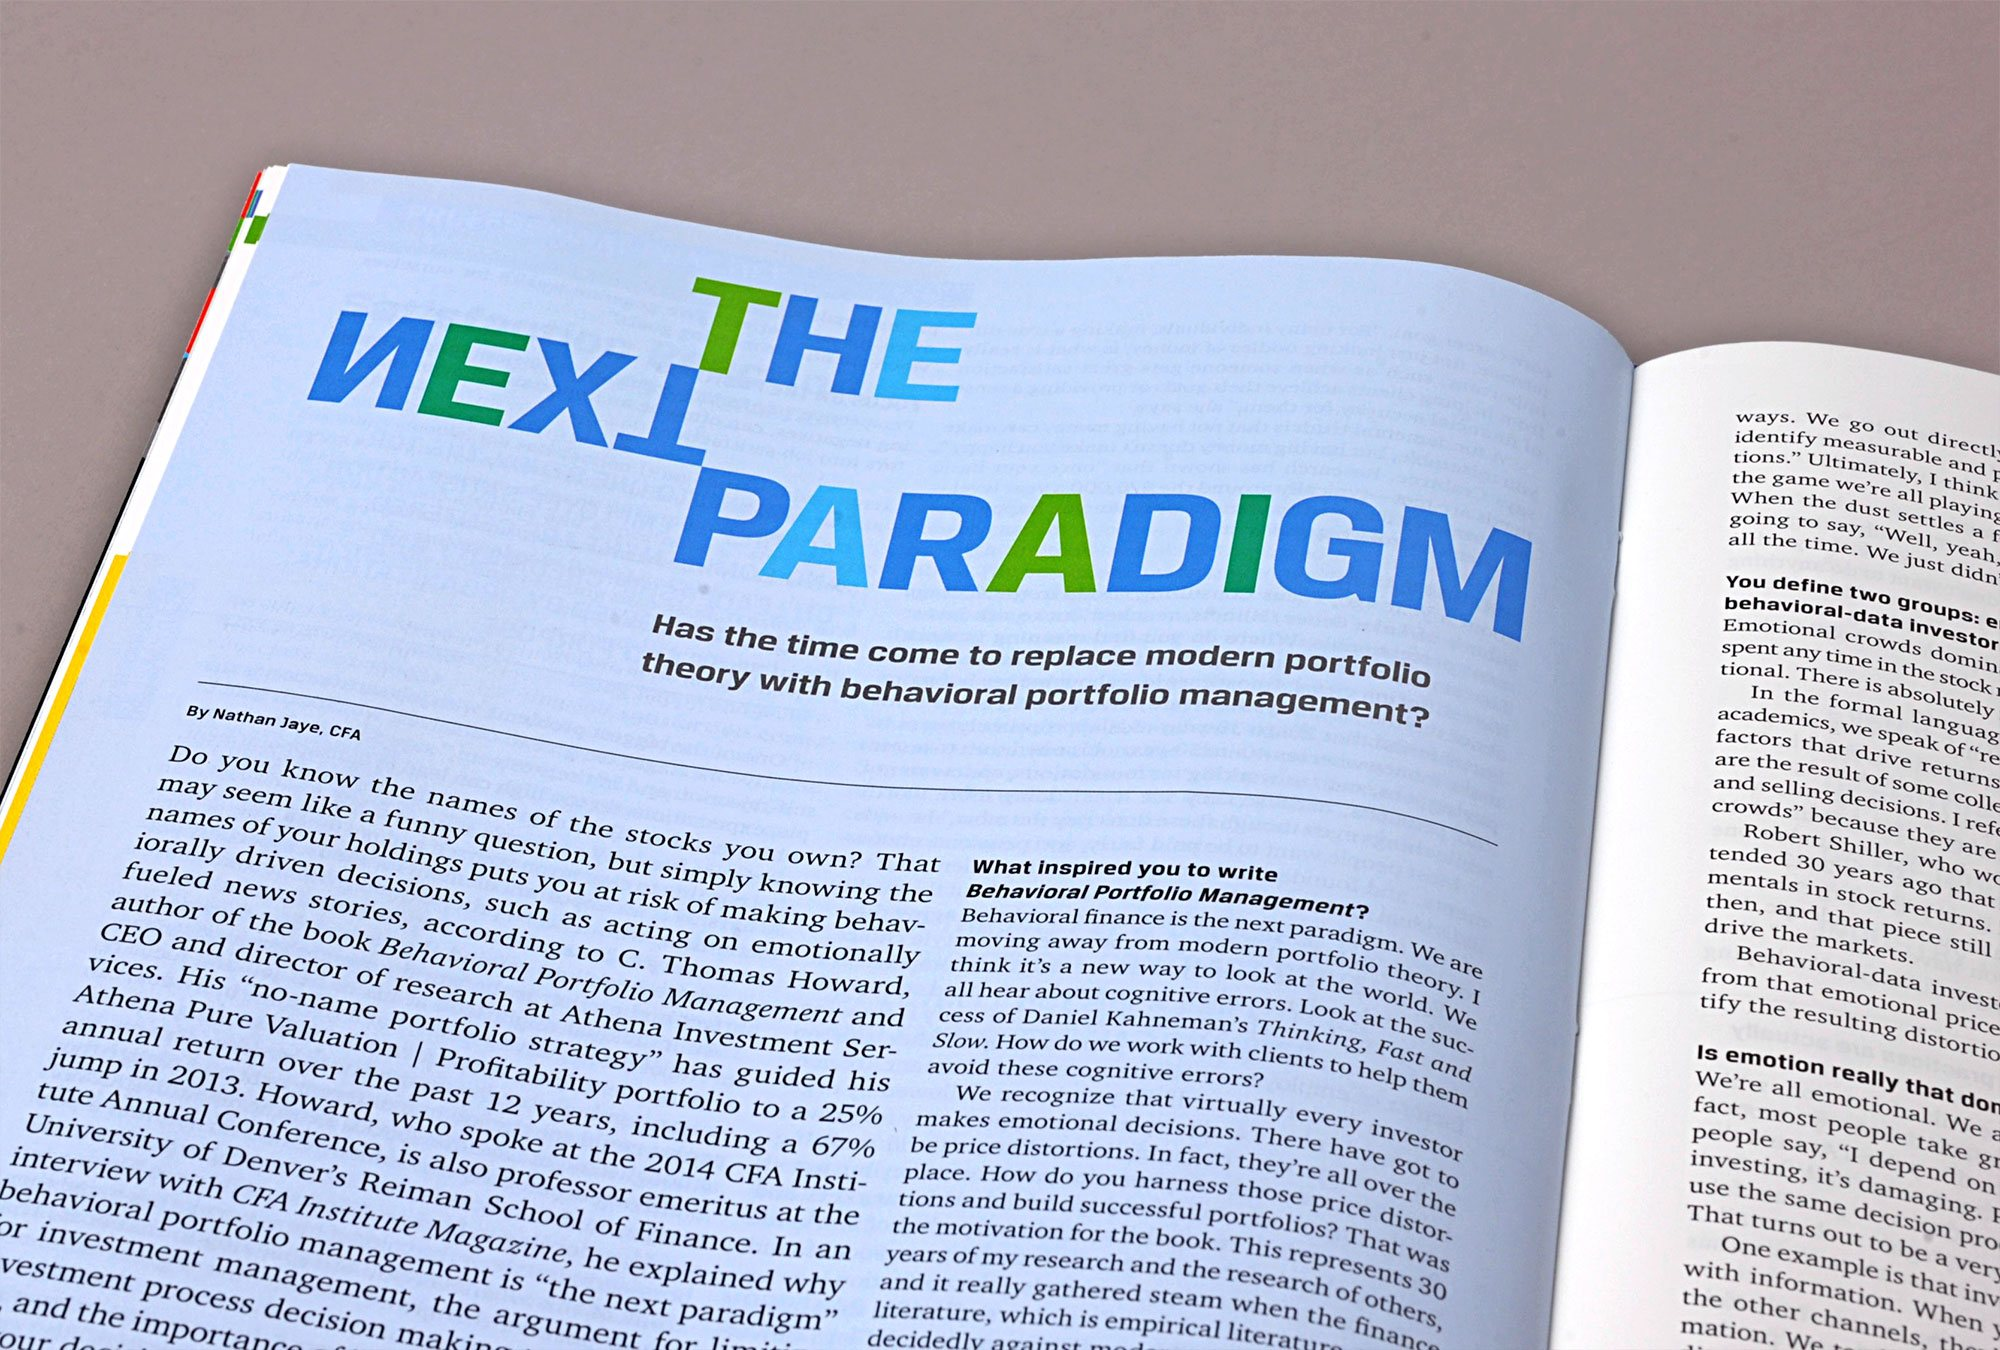 The Next Paradigm title treatment